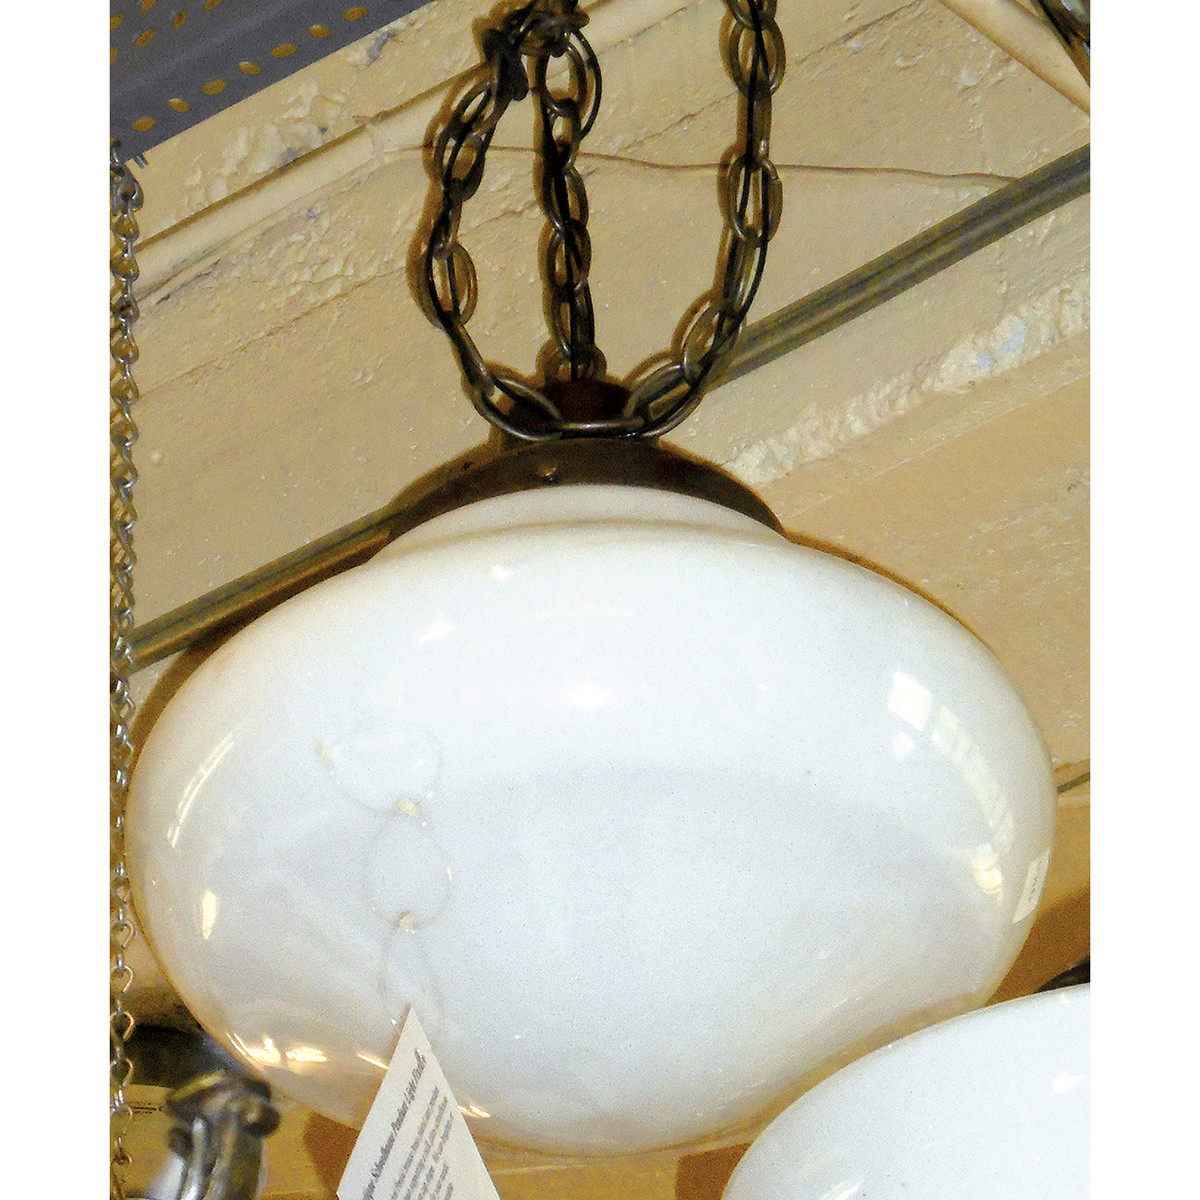 L13296 - Antique Revival Period Schoolhouse Pendant Light Fixture - Unrestored